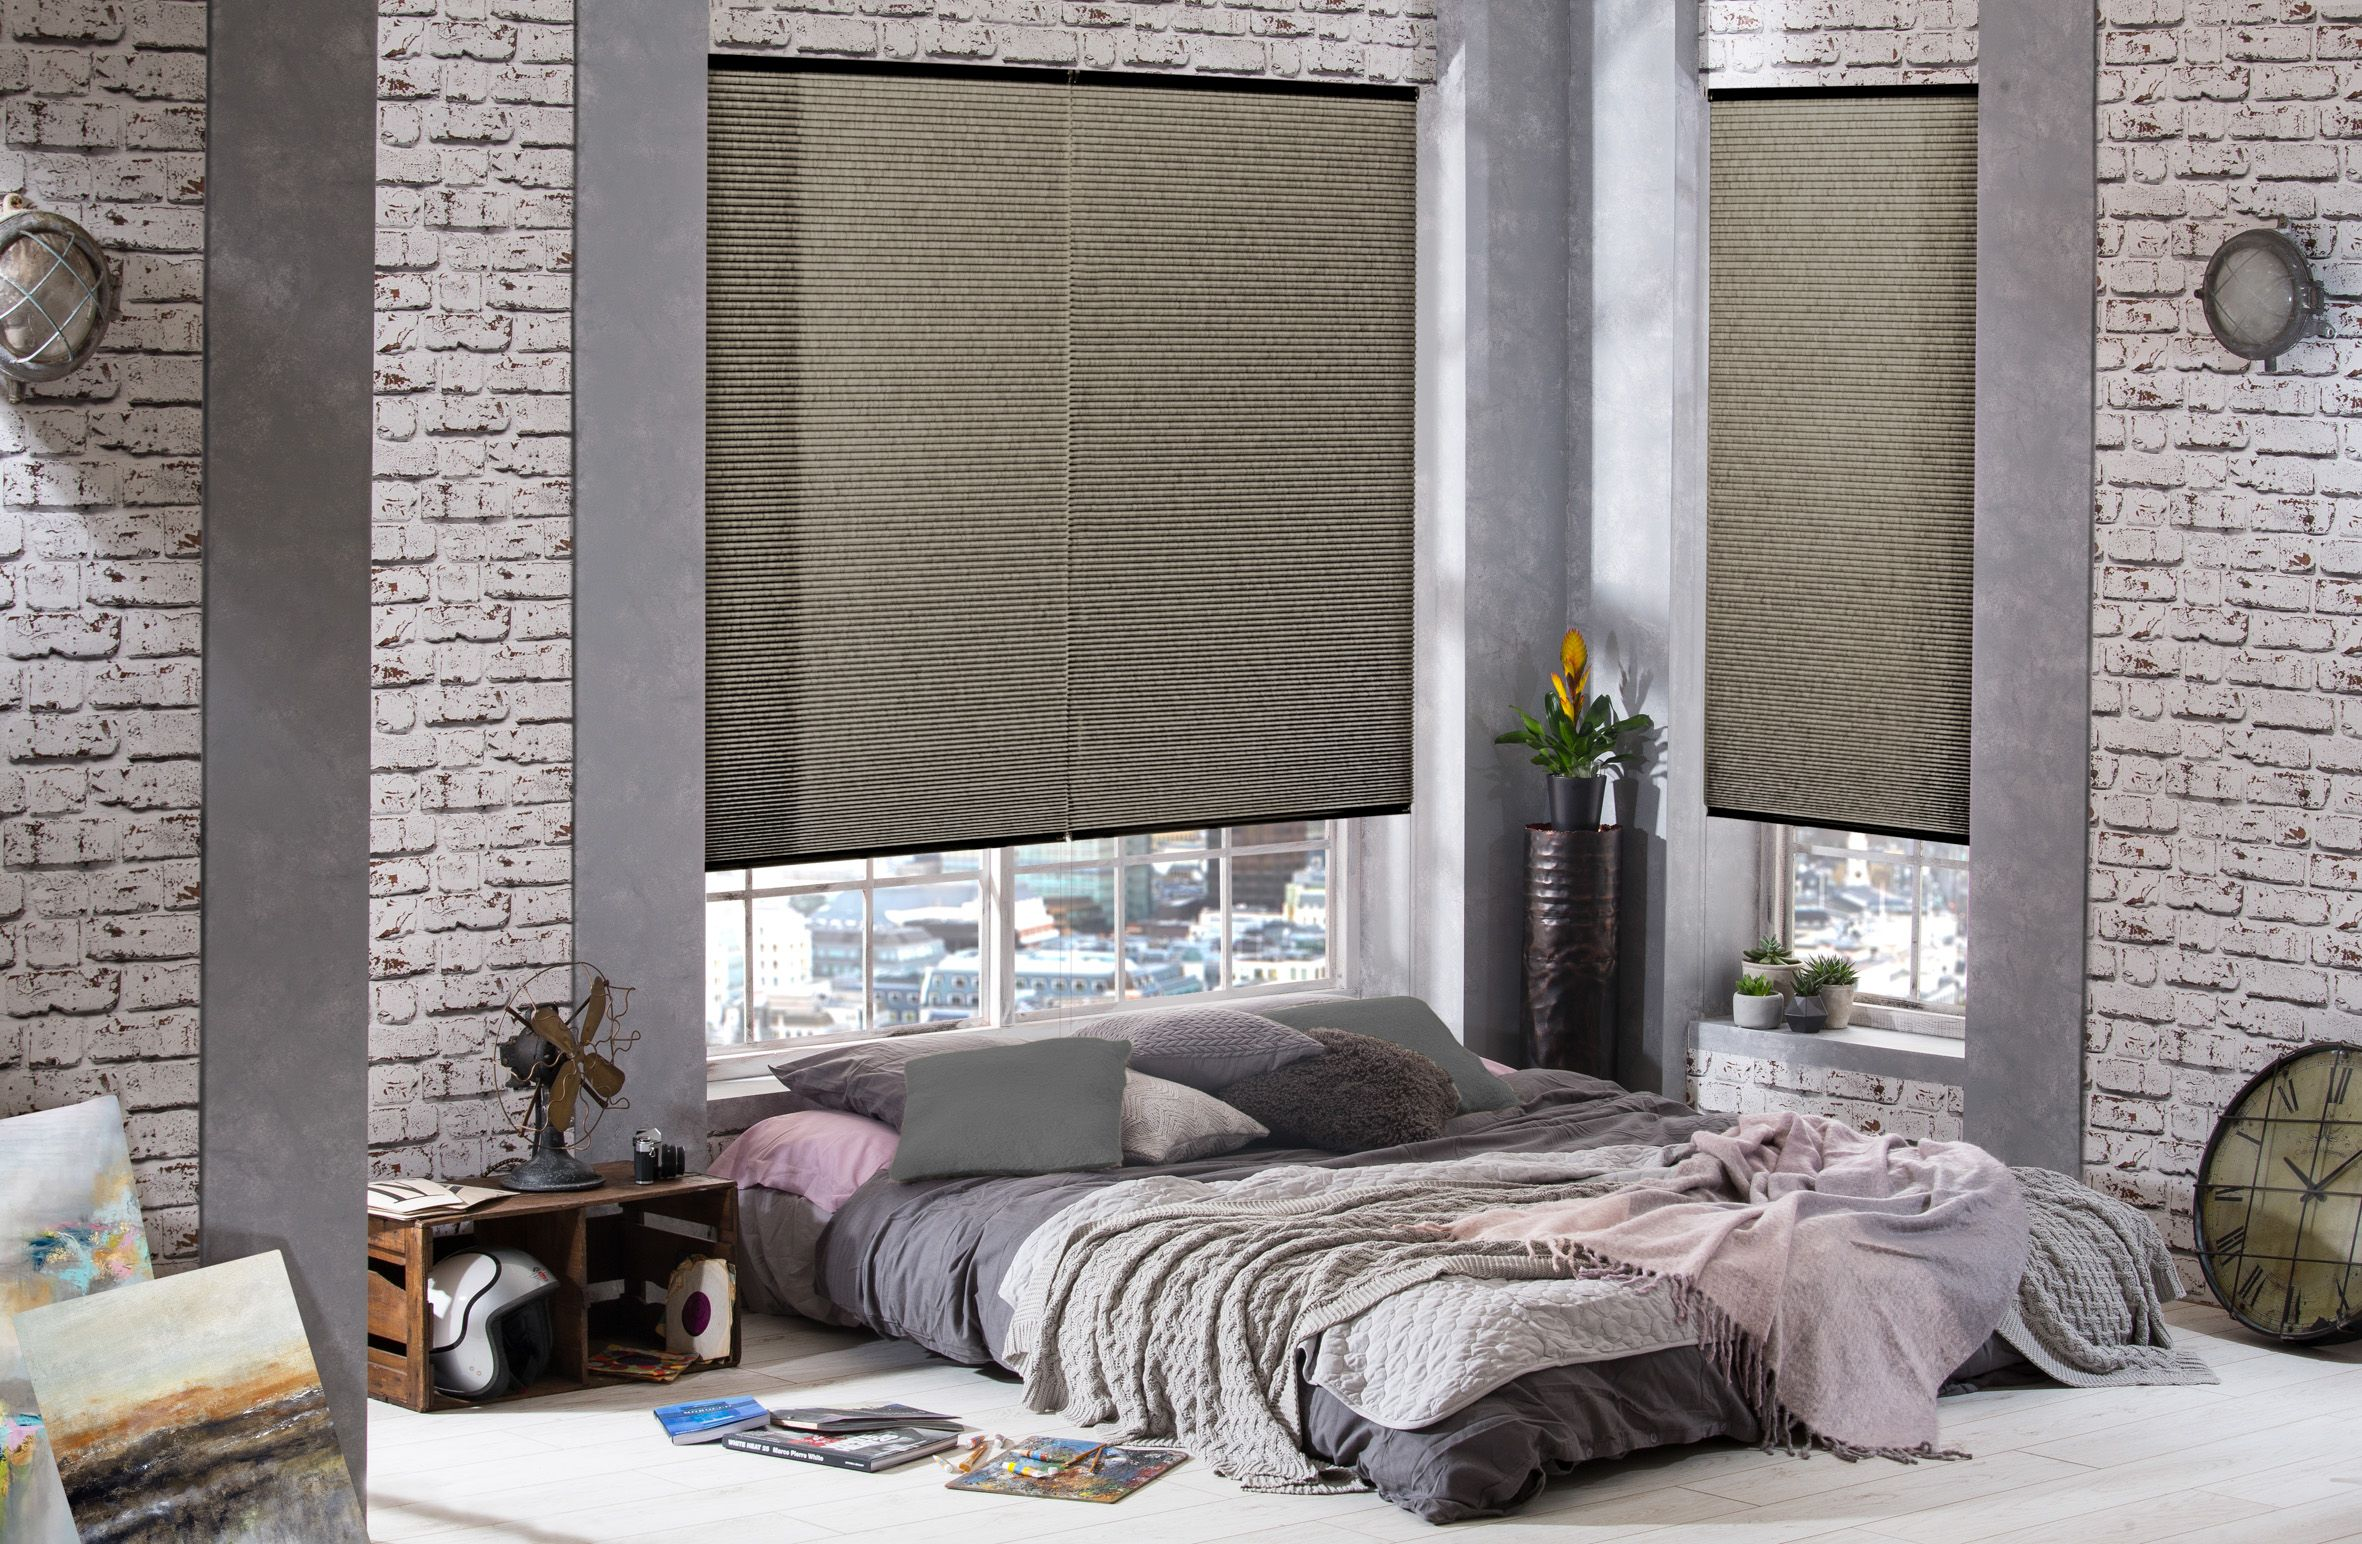 Hive Blinds From Style Studio Grey Blinds Bedroom Blinds Modern